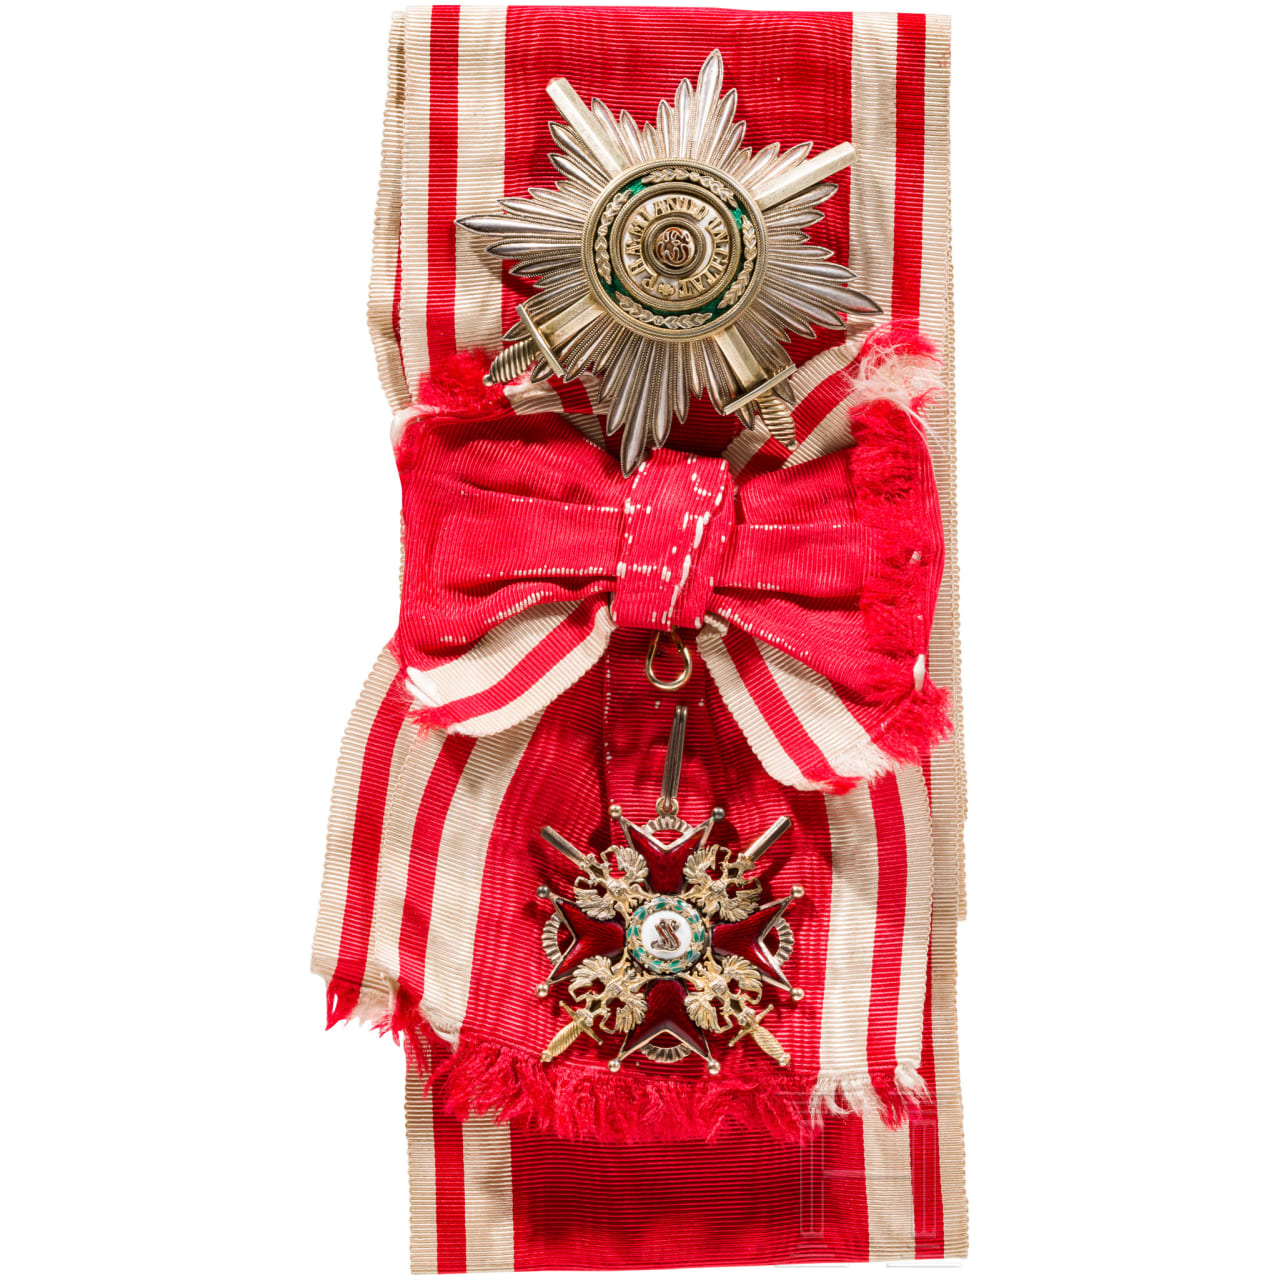 A Russian Order of St. Stanislaus, 1st Class set with swords, private production, late 19th century